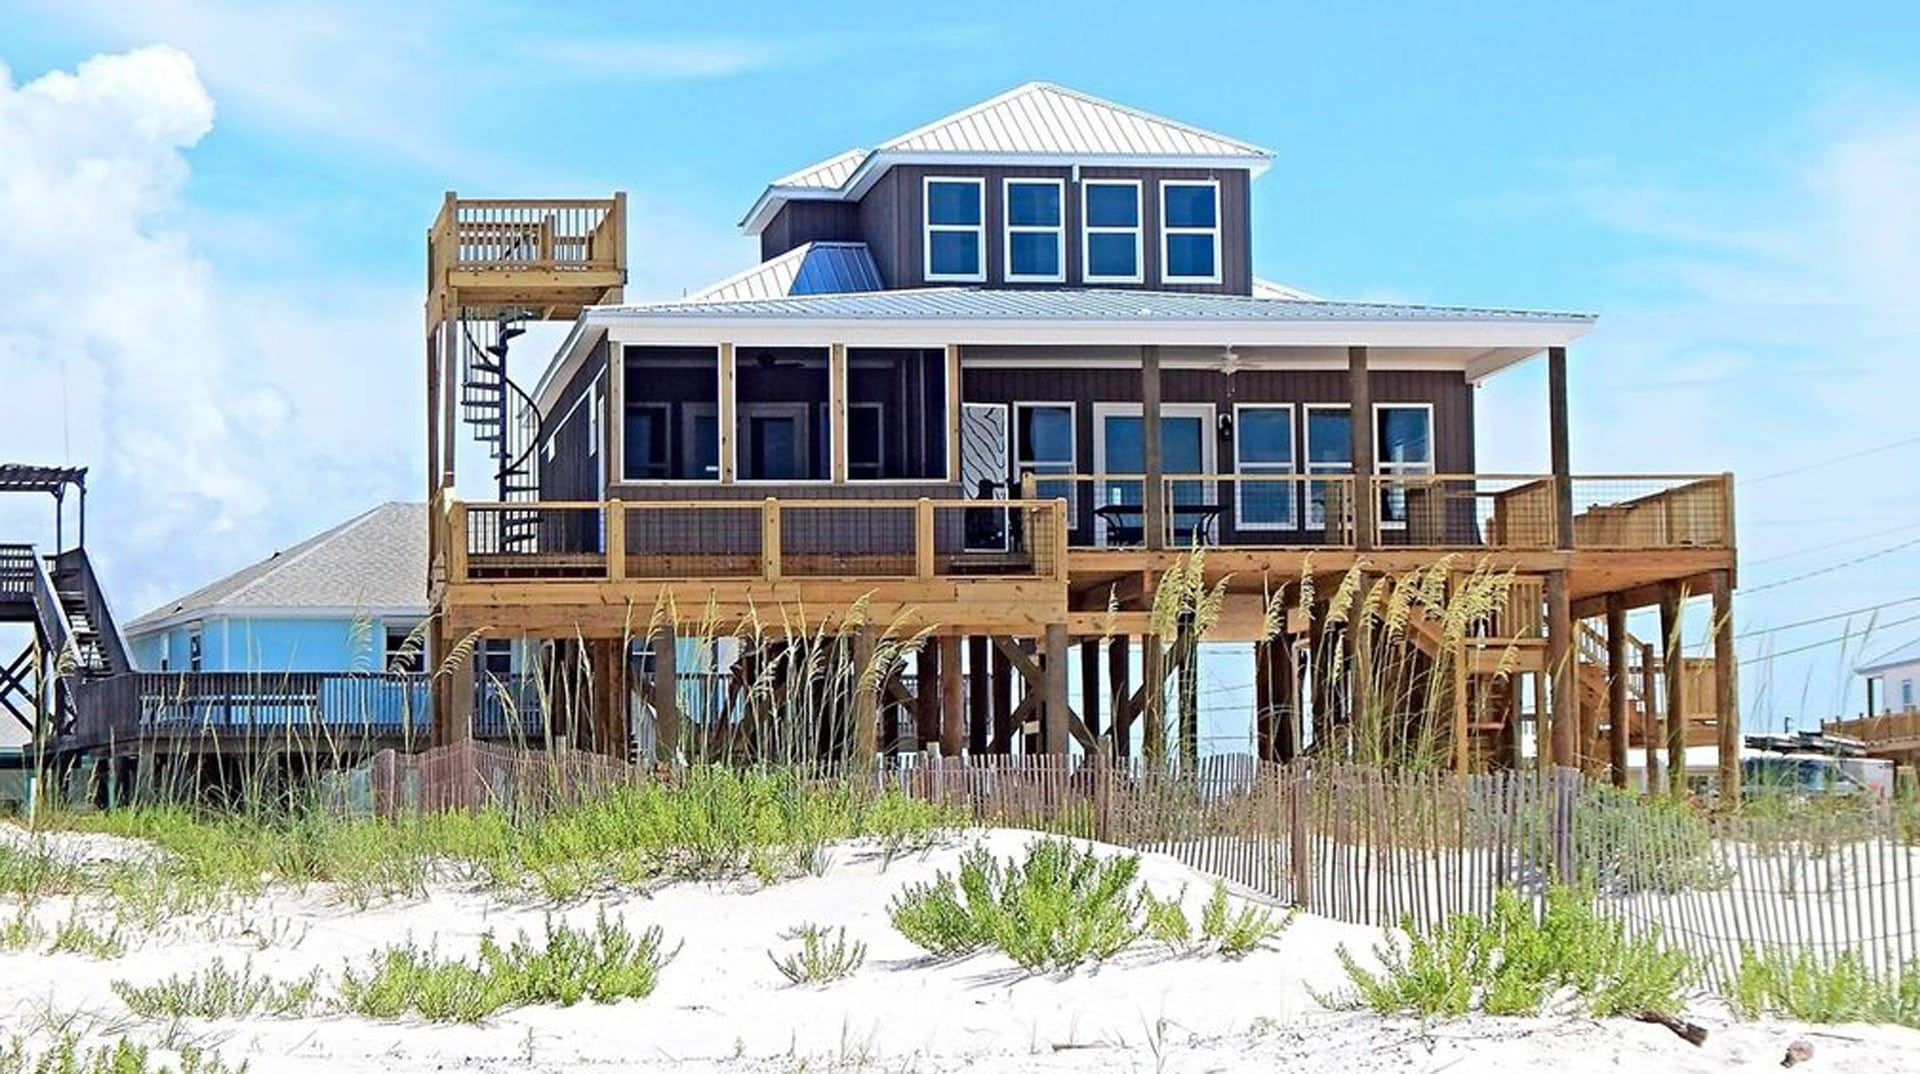 st. augustine new construction mortgage, st. augustine beach new construction mortgage, new construction mortgage st. augustine, st. augustine mortgage